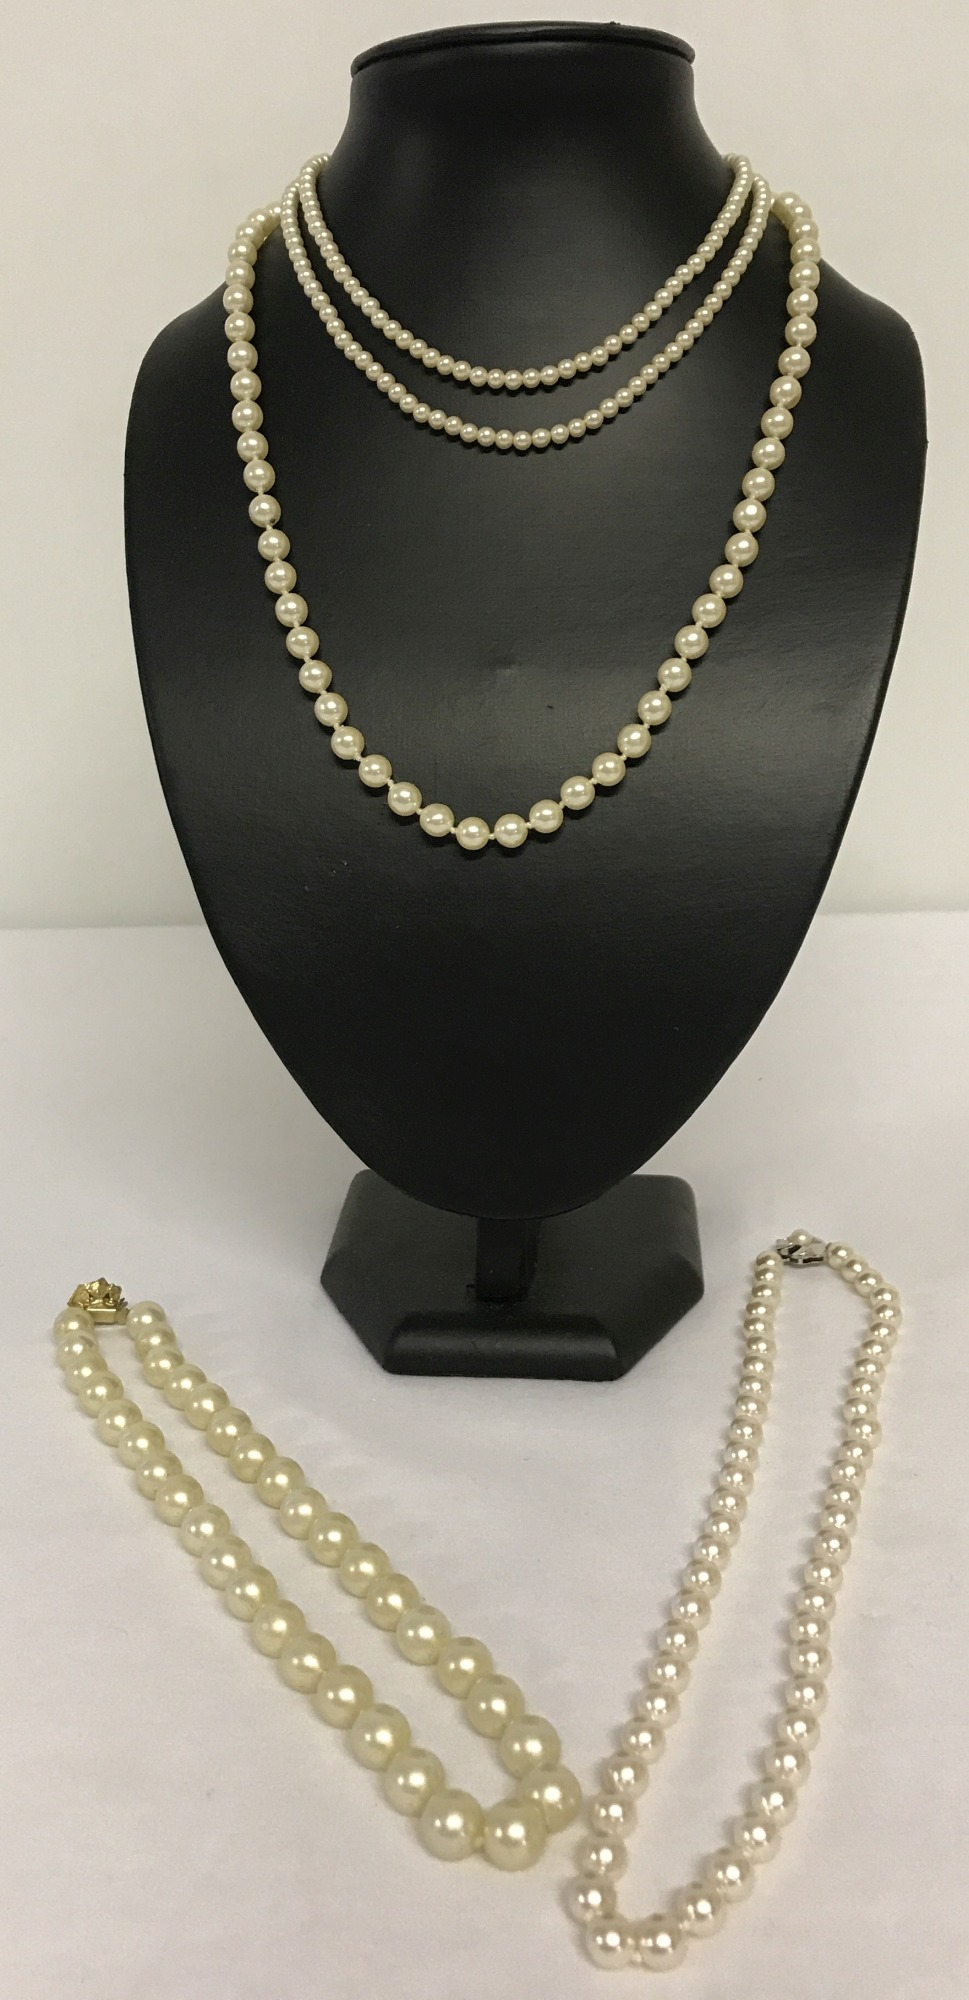 4 vintage faux pearl necklaces all with decorative clasps. One marked 925.